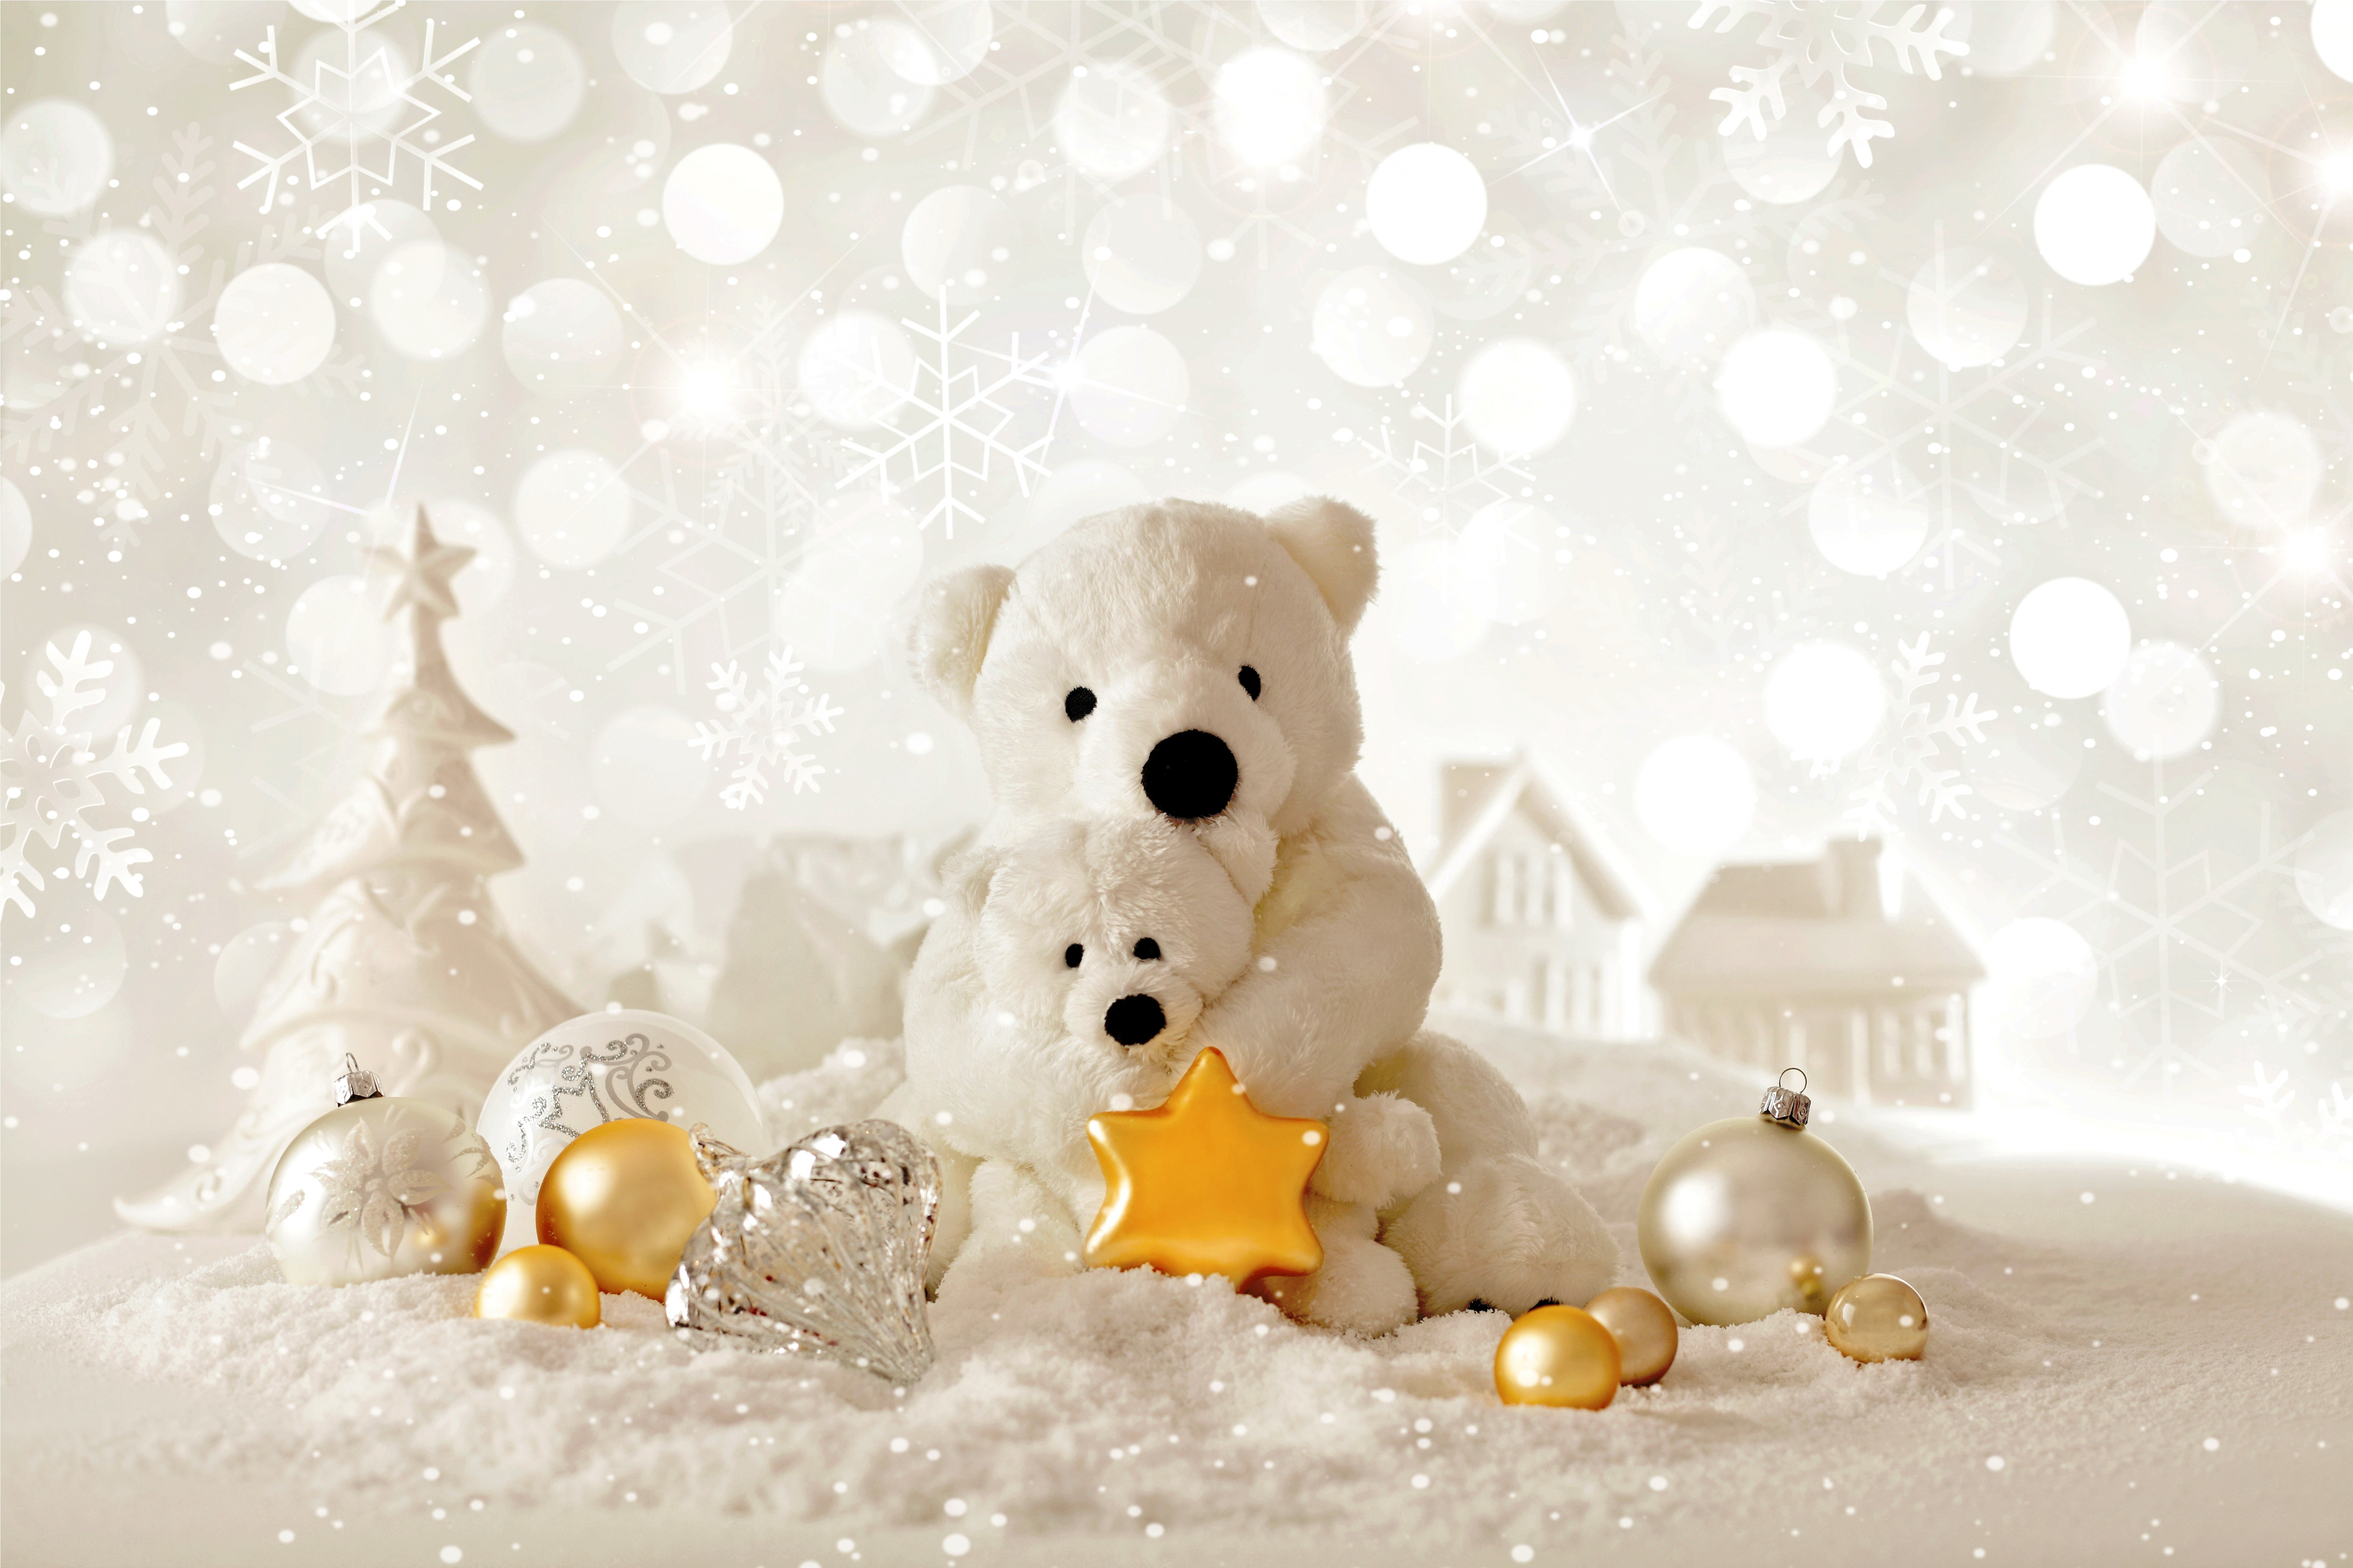 Wallpaper Christmas New Year Bear decorations Holidays #8313 - Bear Decorations For Home